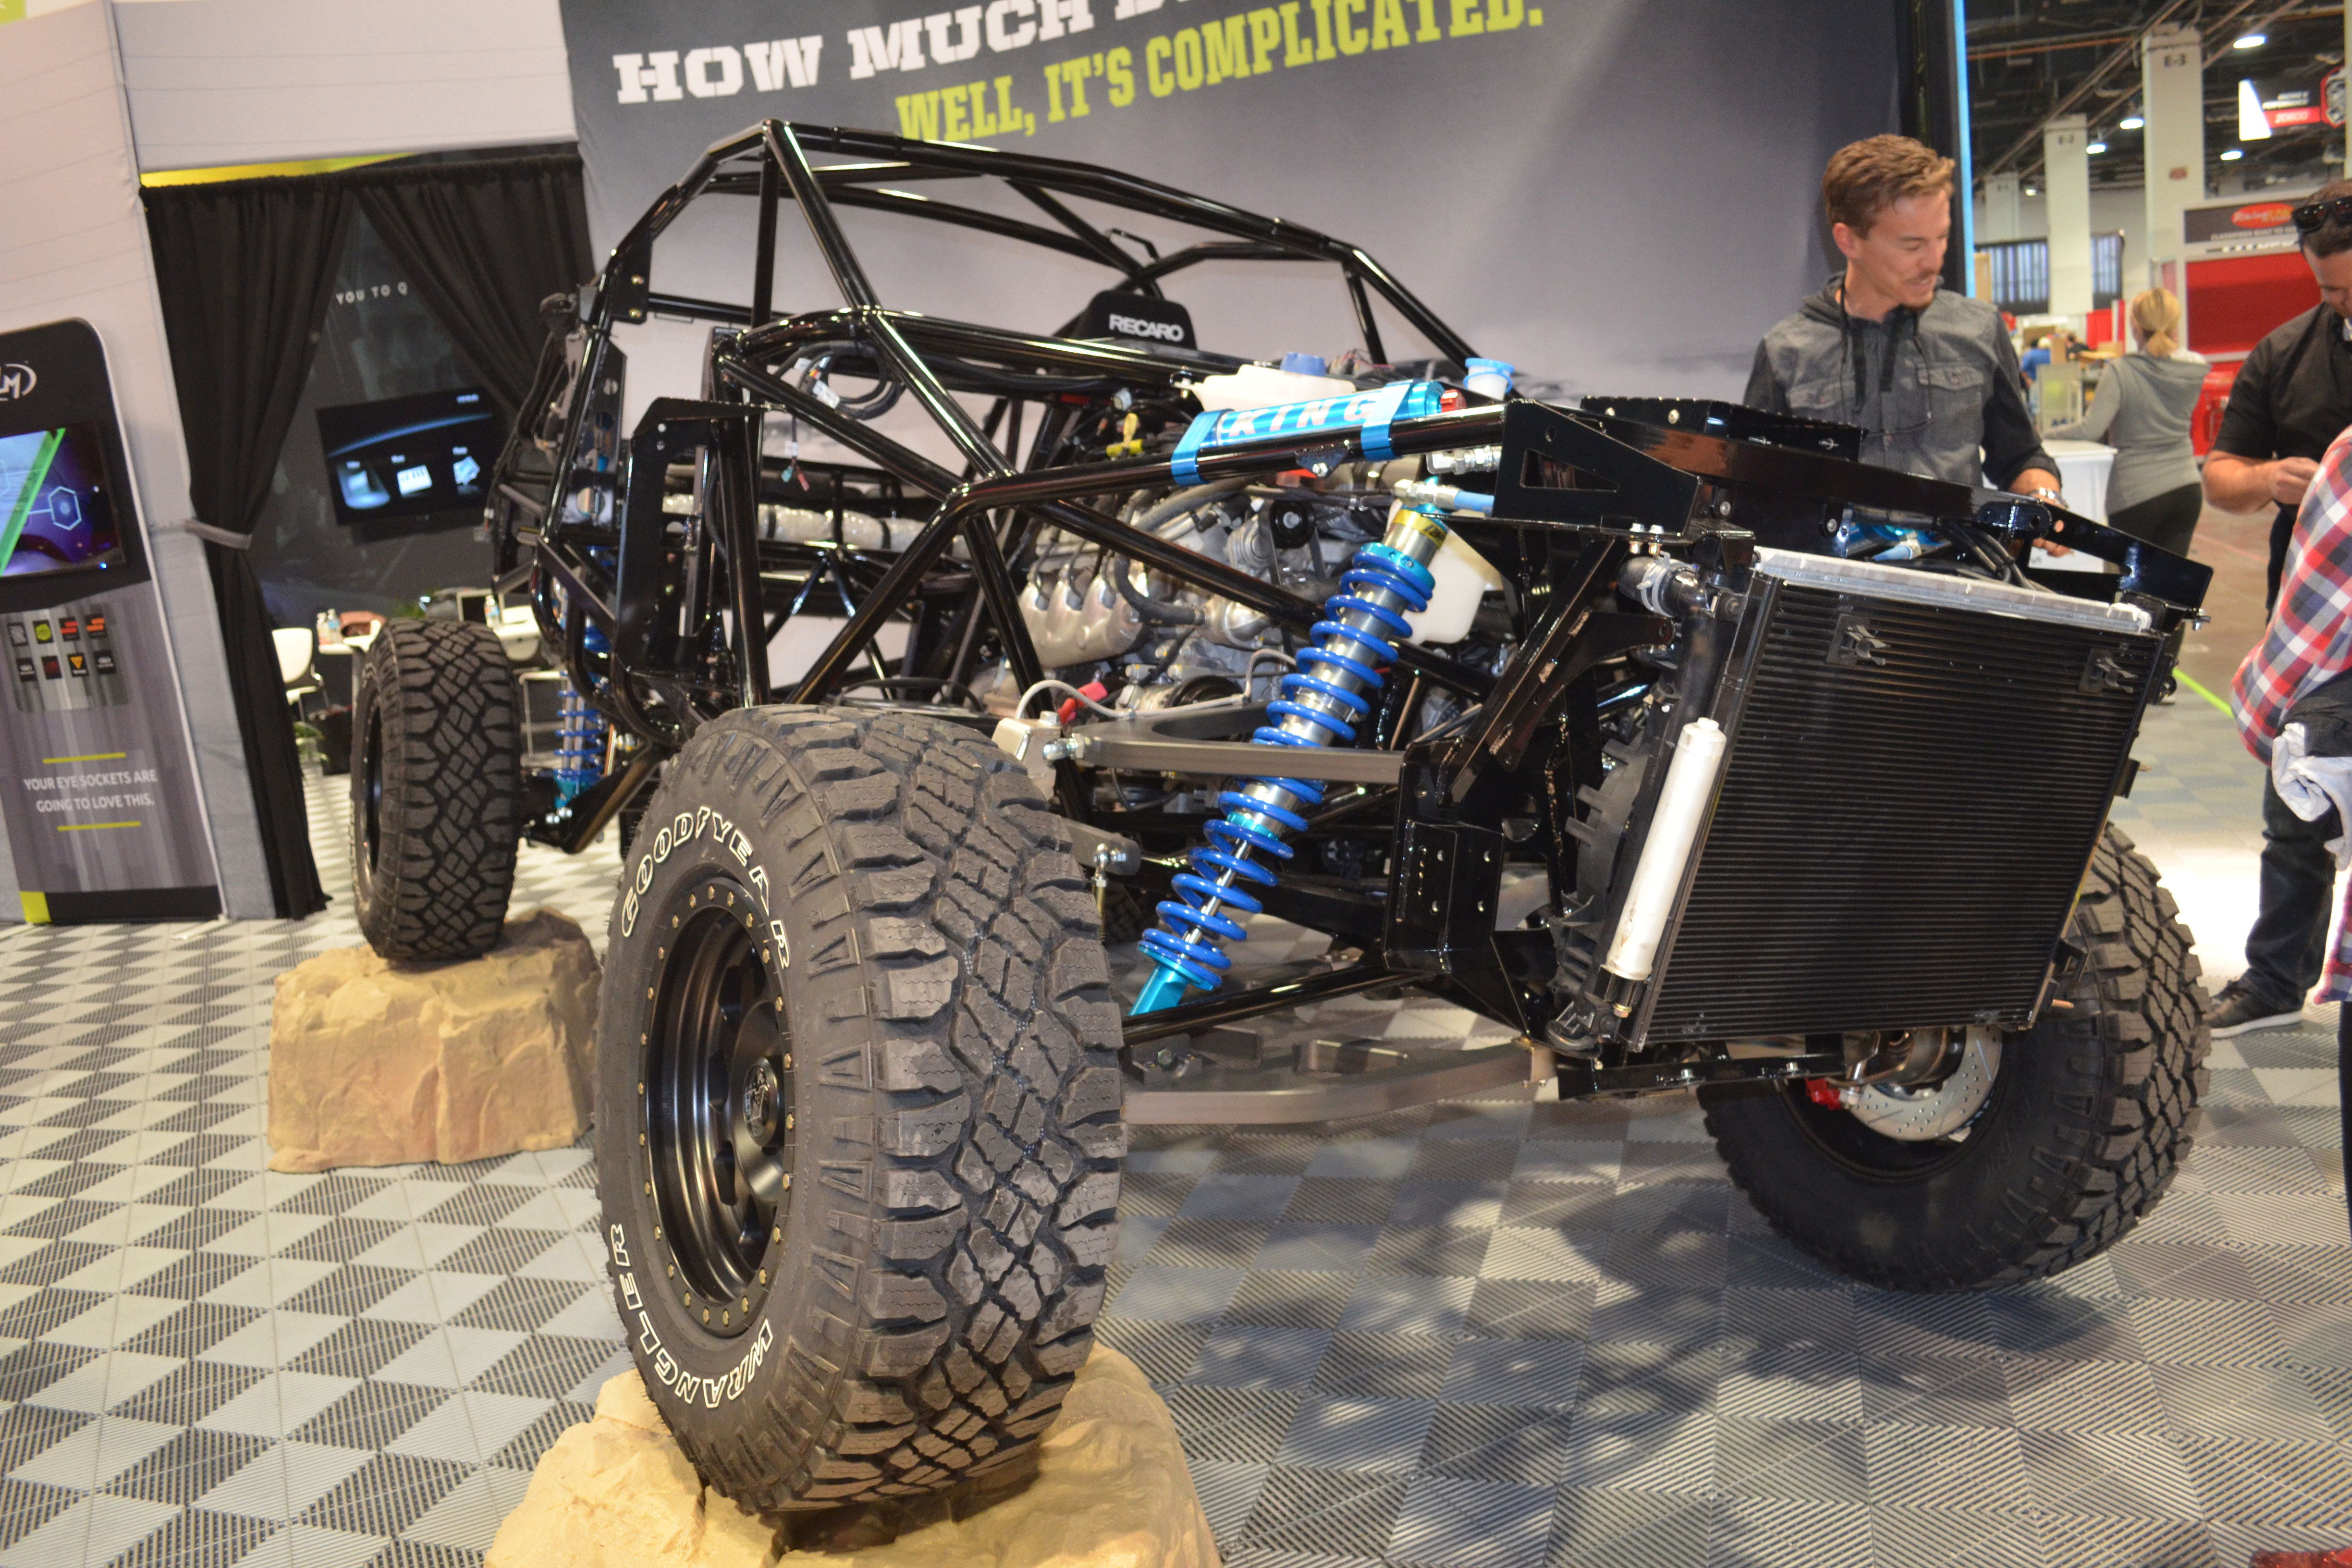 2015 SEMA Show Monday rally fighter chassis